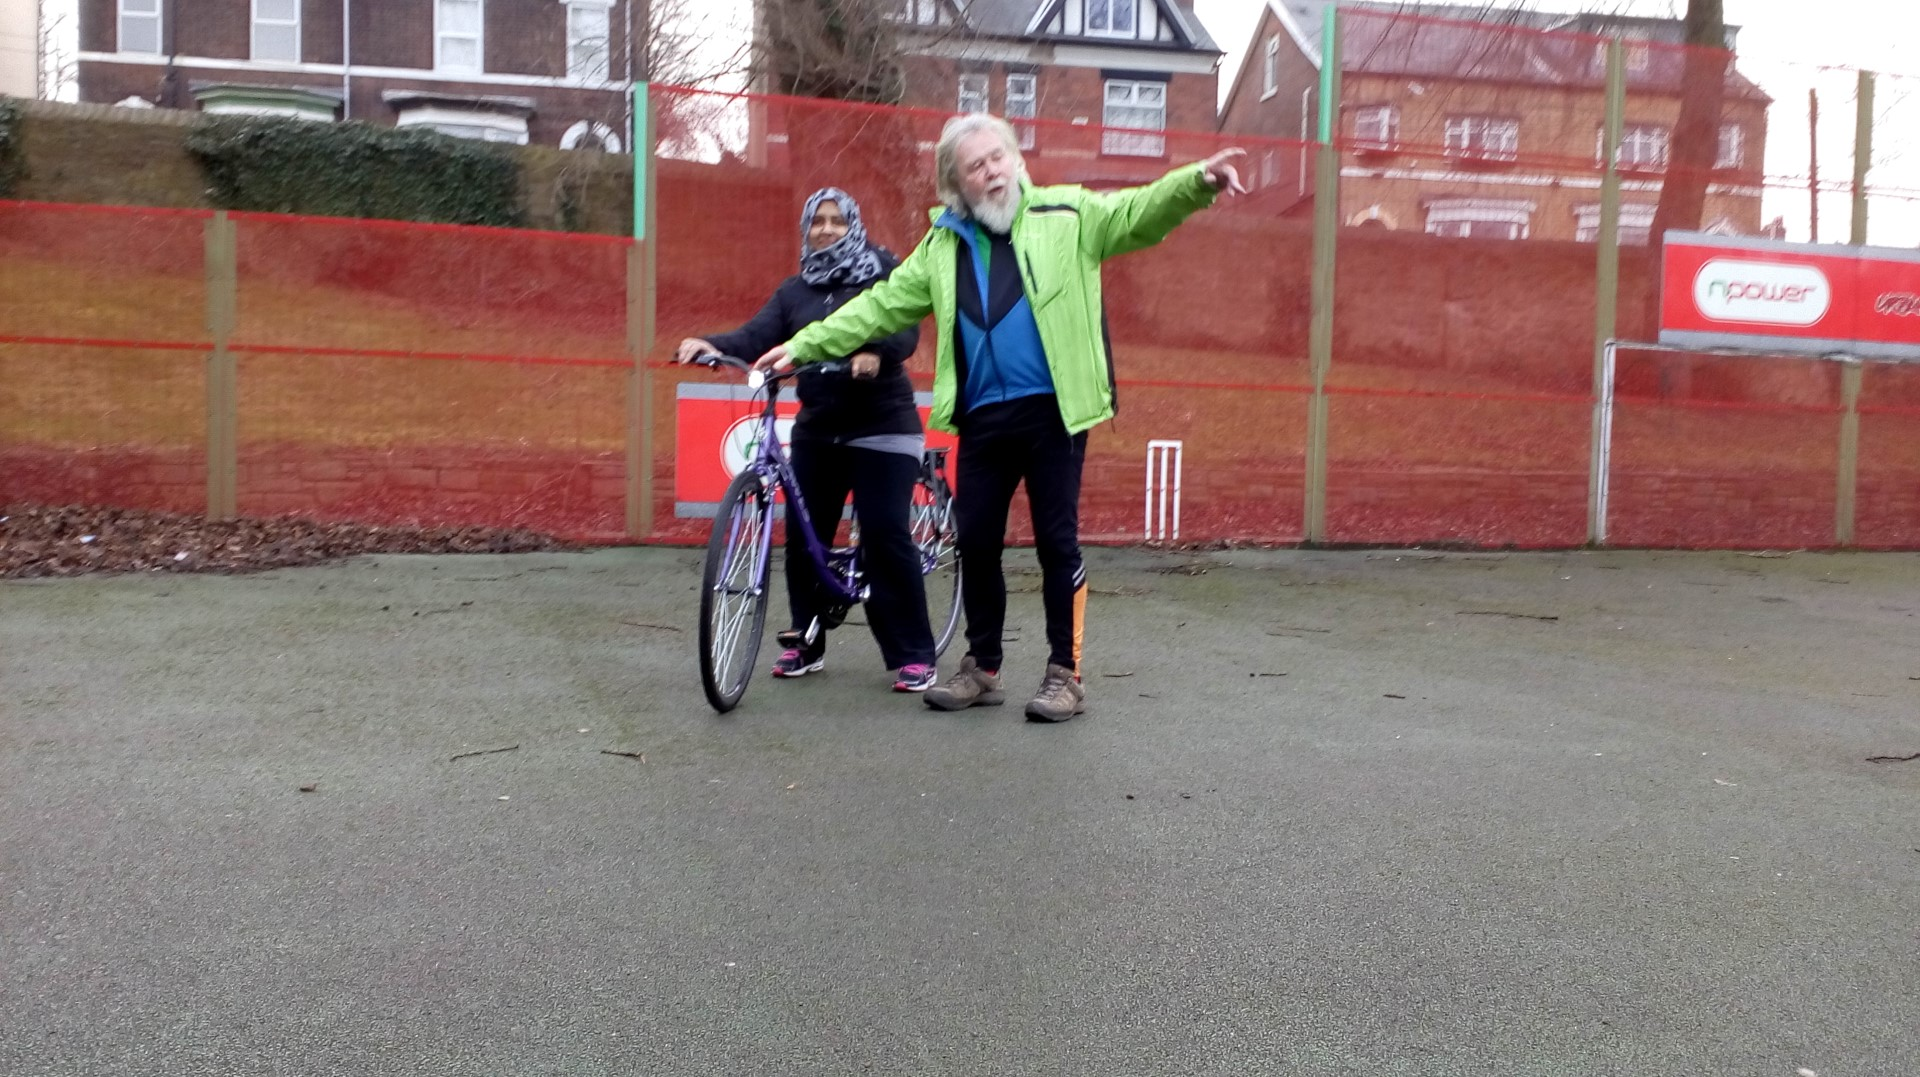 Dave Brennan is pointing while holding the handlebars of a bike ridden by a young learner.